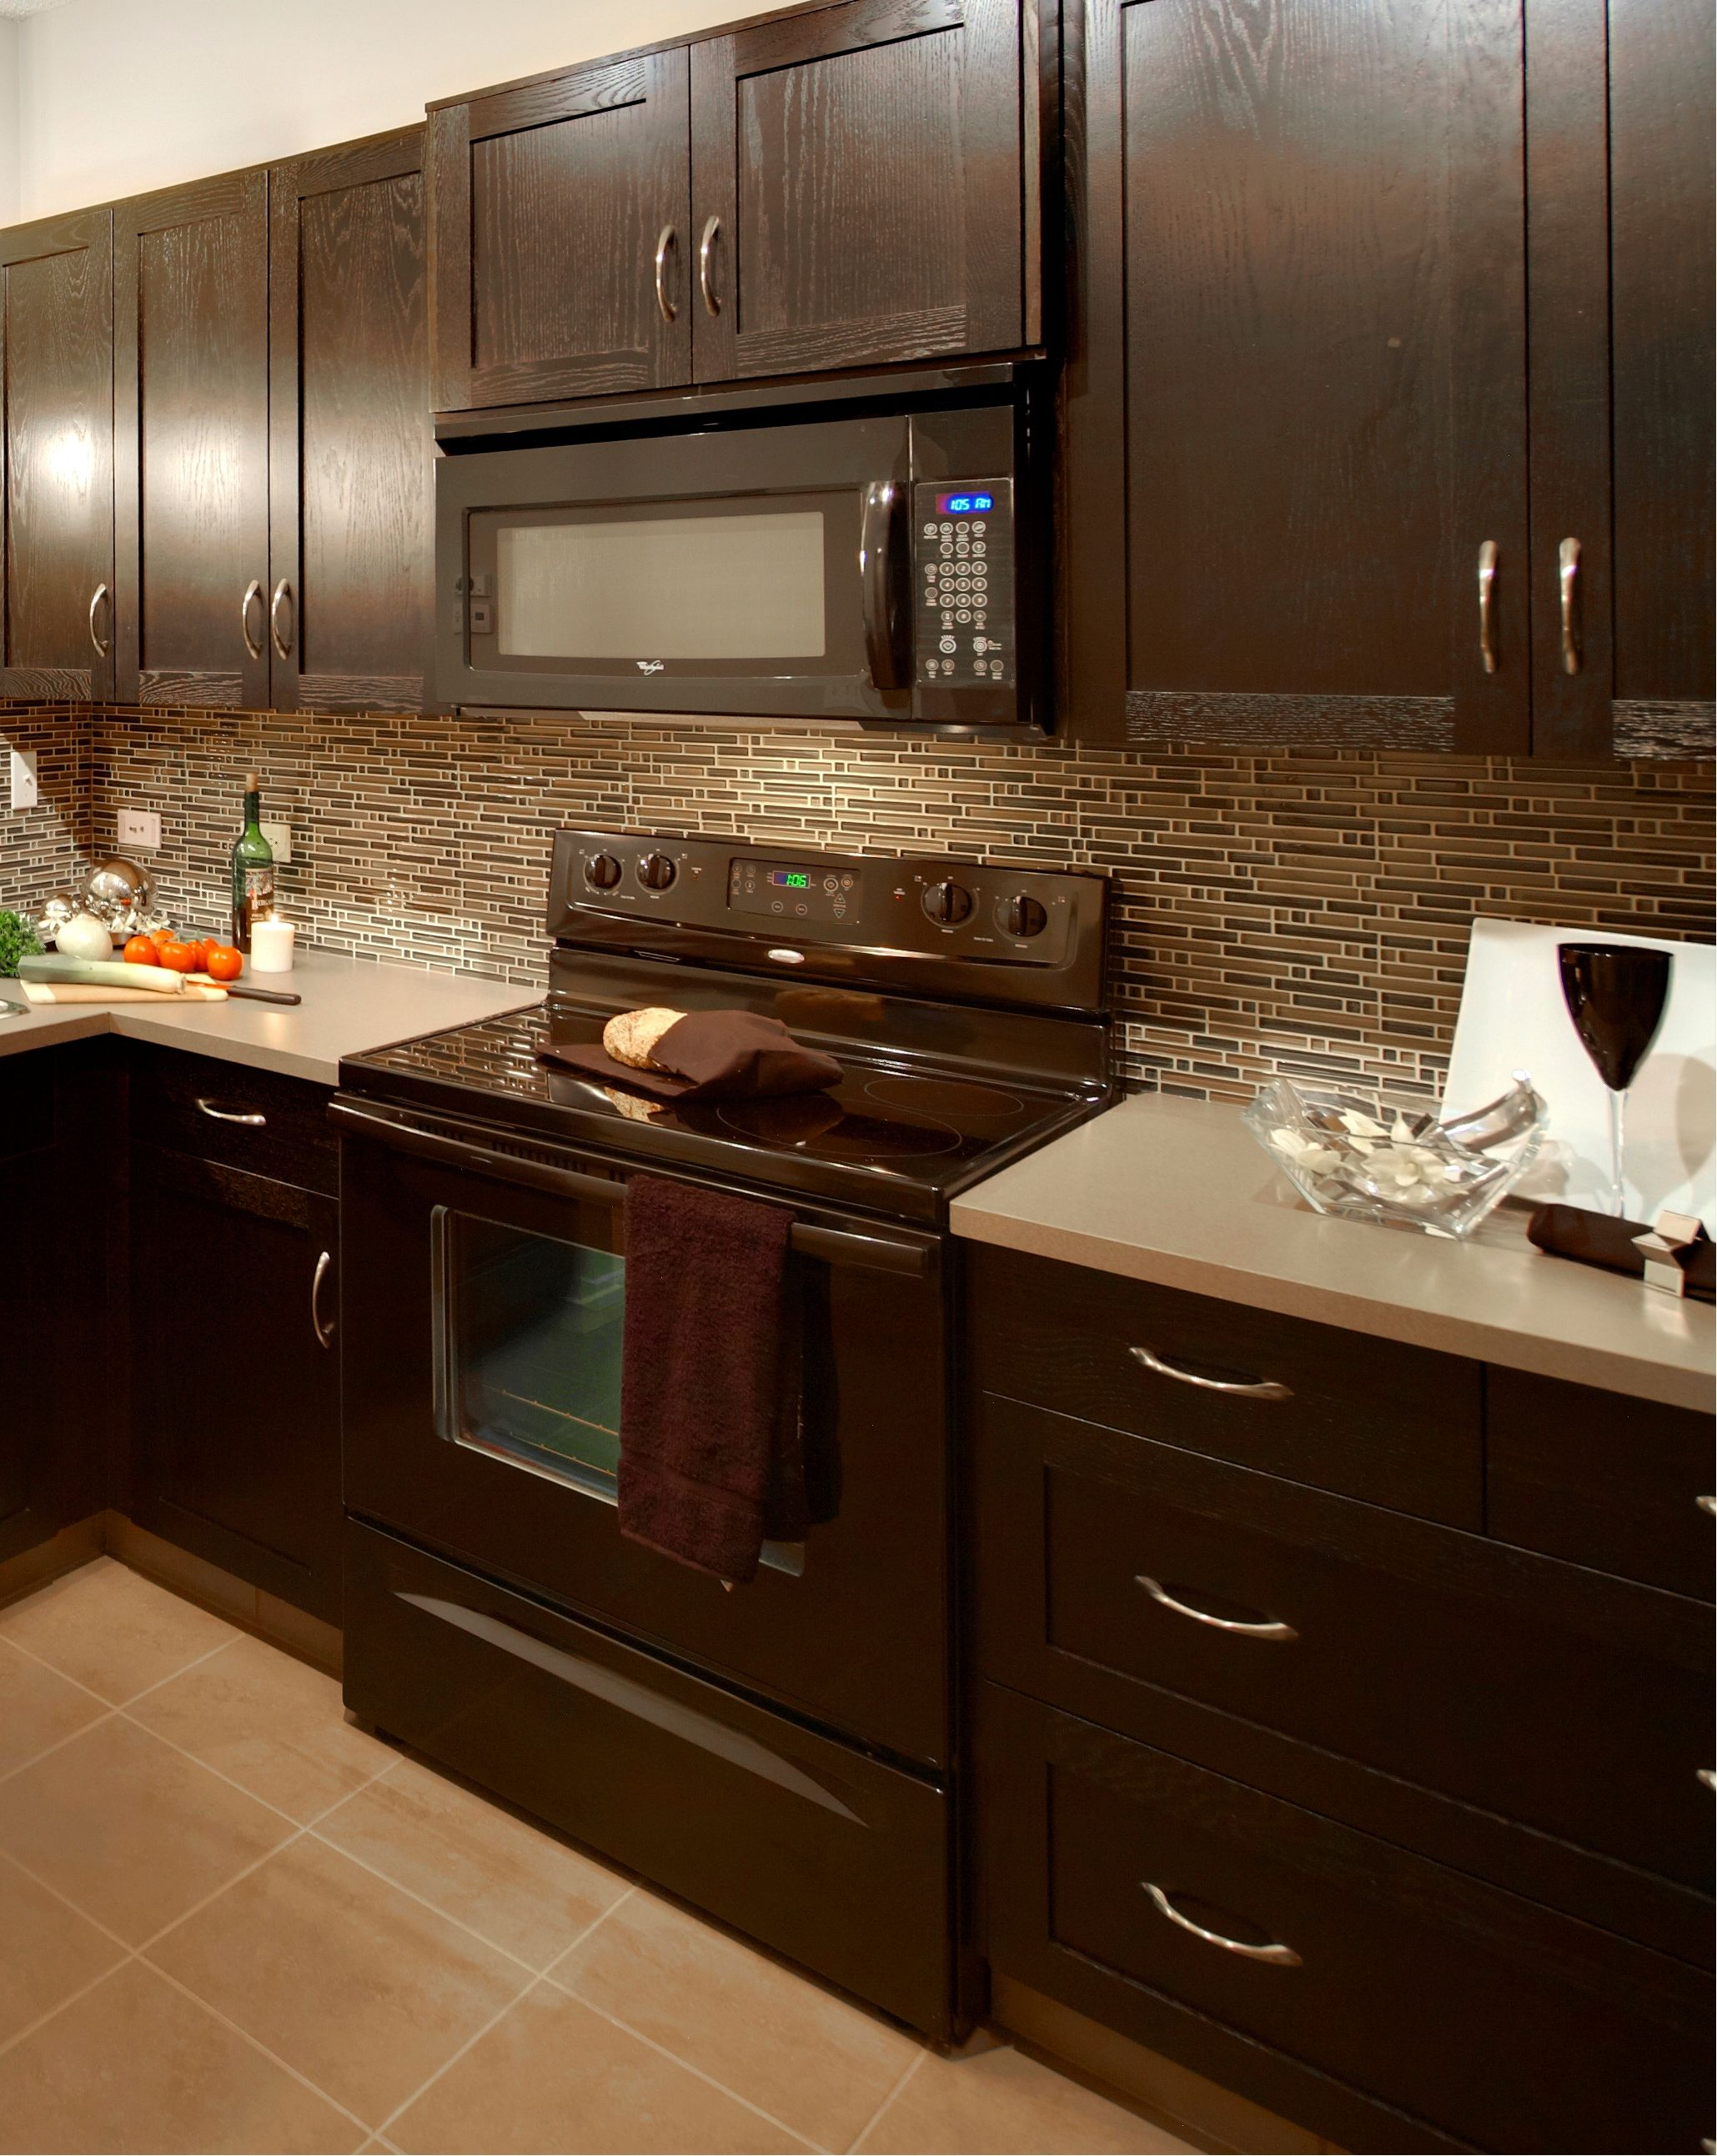 Designer Kitchens Dark Cabinets Modern Kitchen With Glass Mosaic Backsplash Taupe Floor Tile